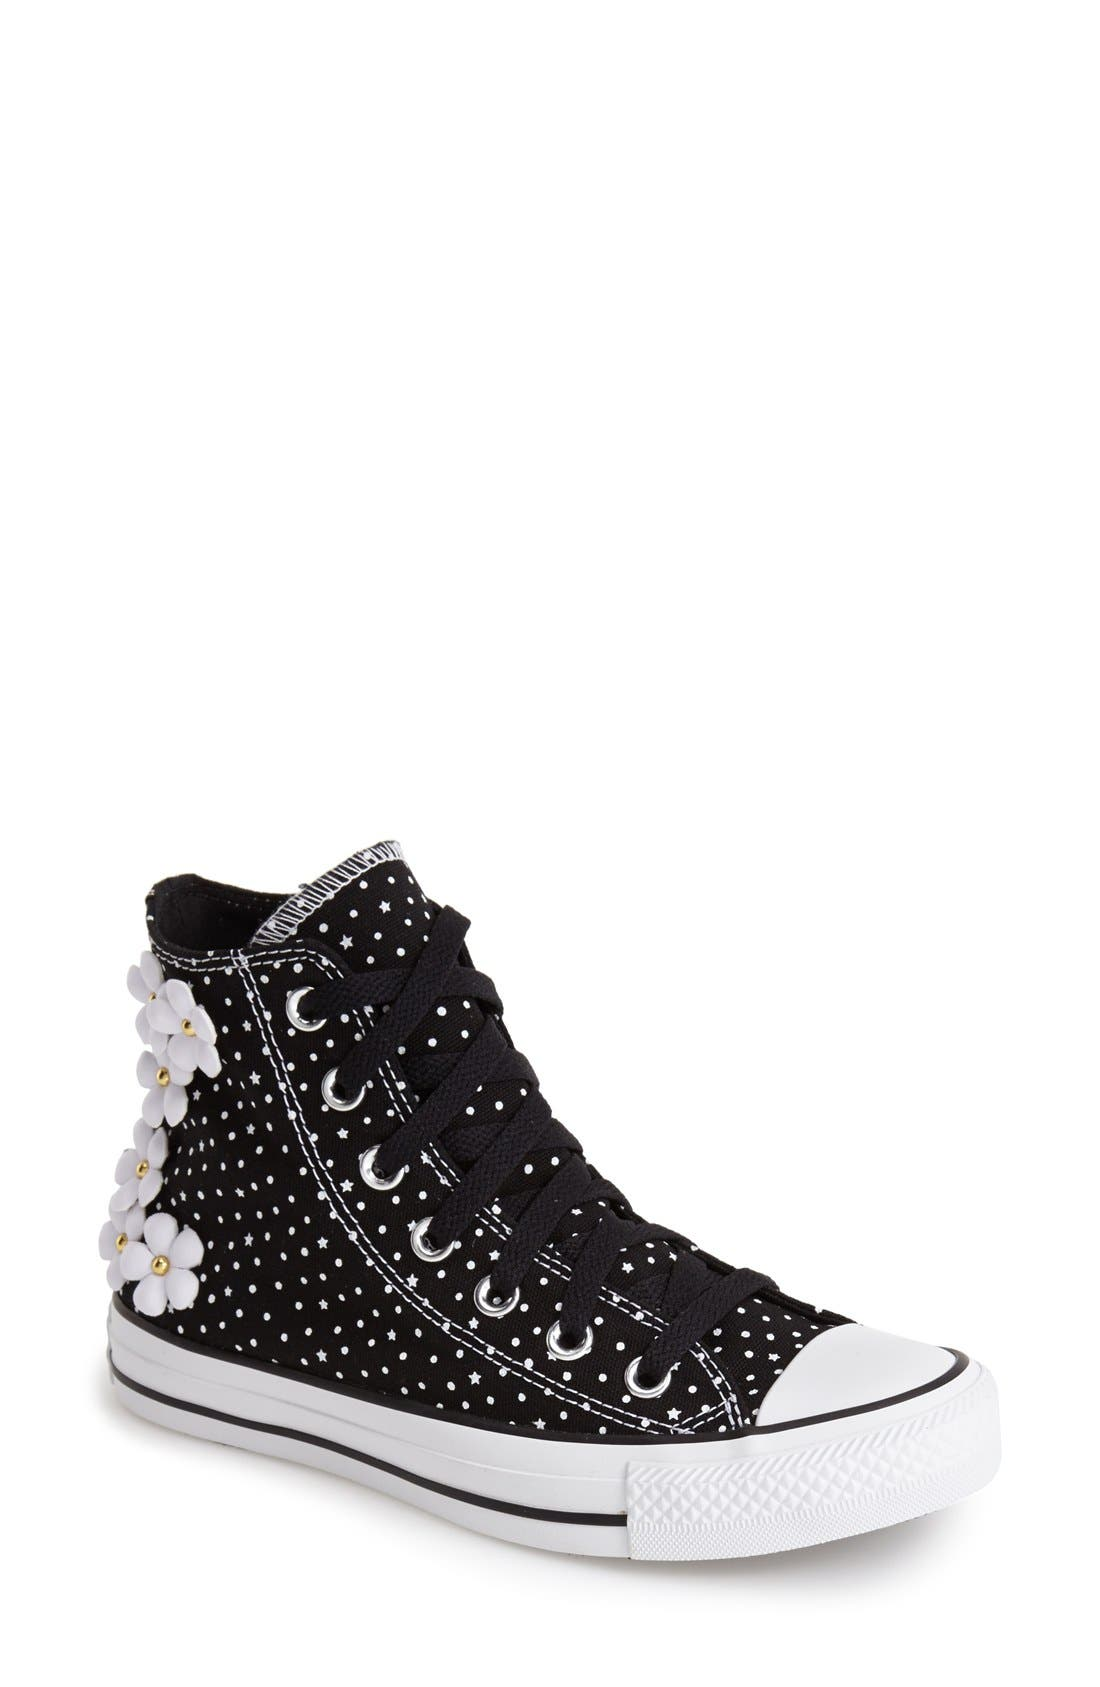 Alternate Image 1 Selected - Converse Chuck Taylor® All Star® 'Floral Polka Dot' High Top Sneaker (Women)